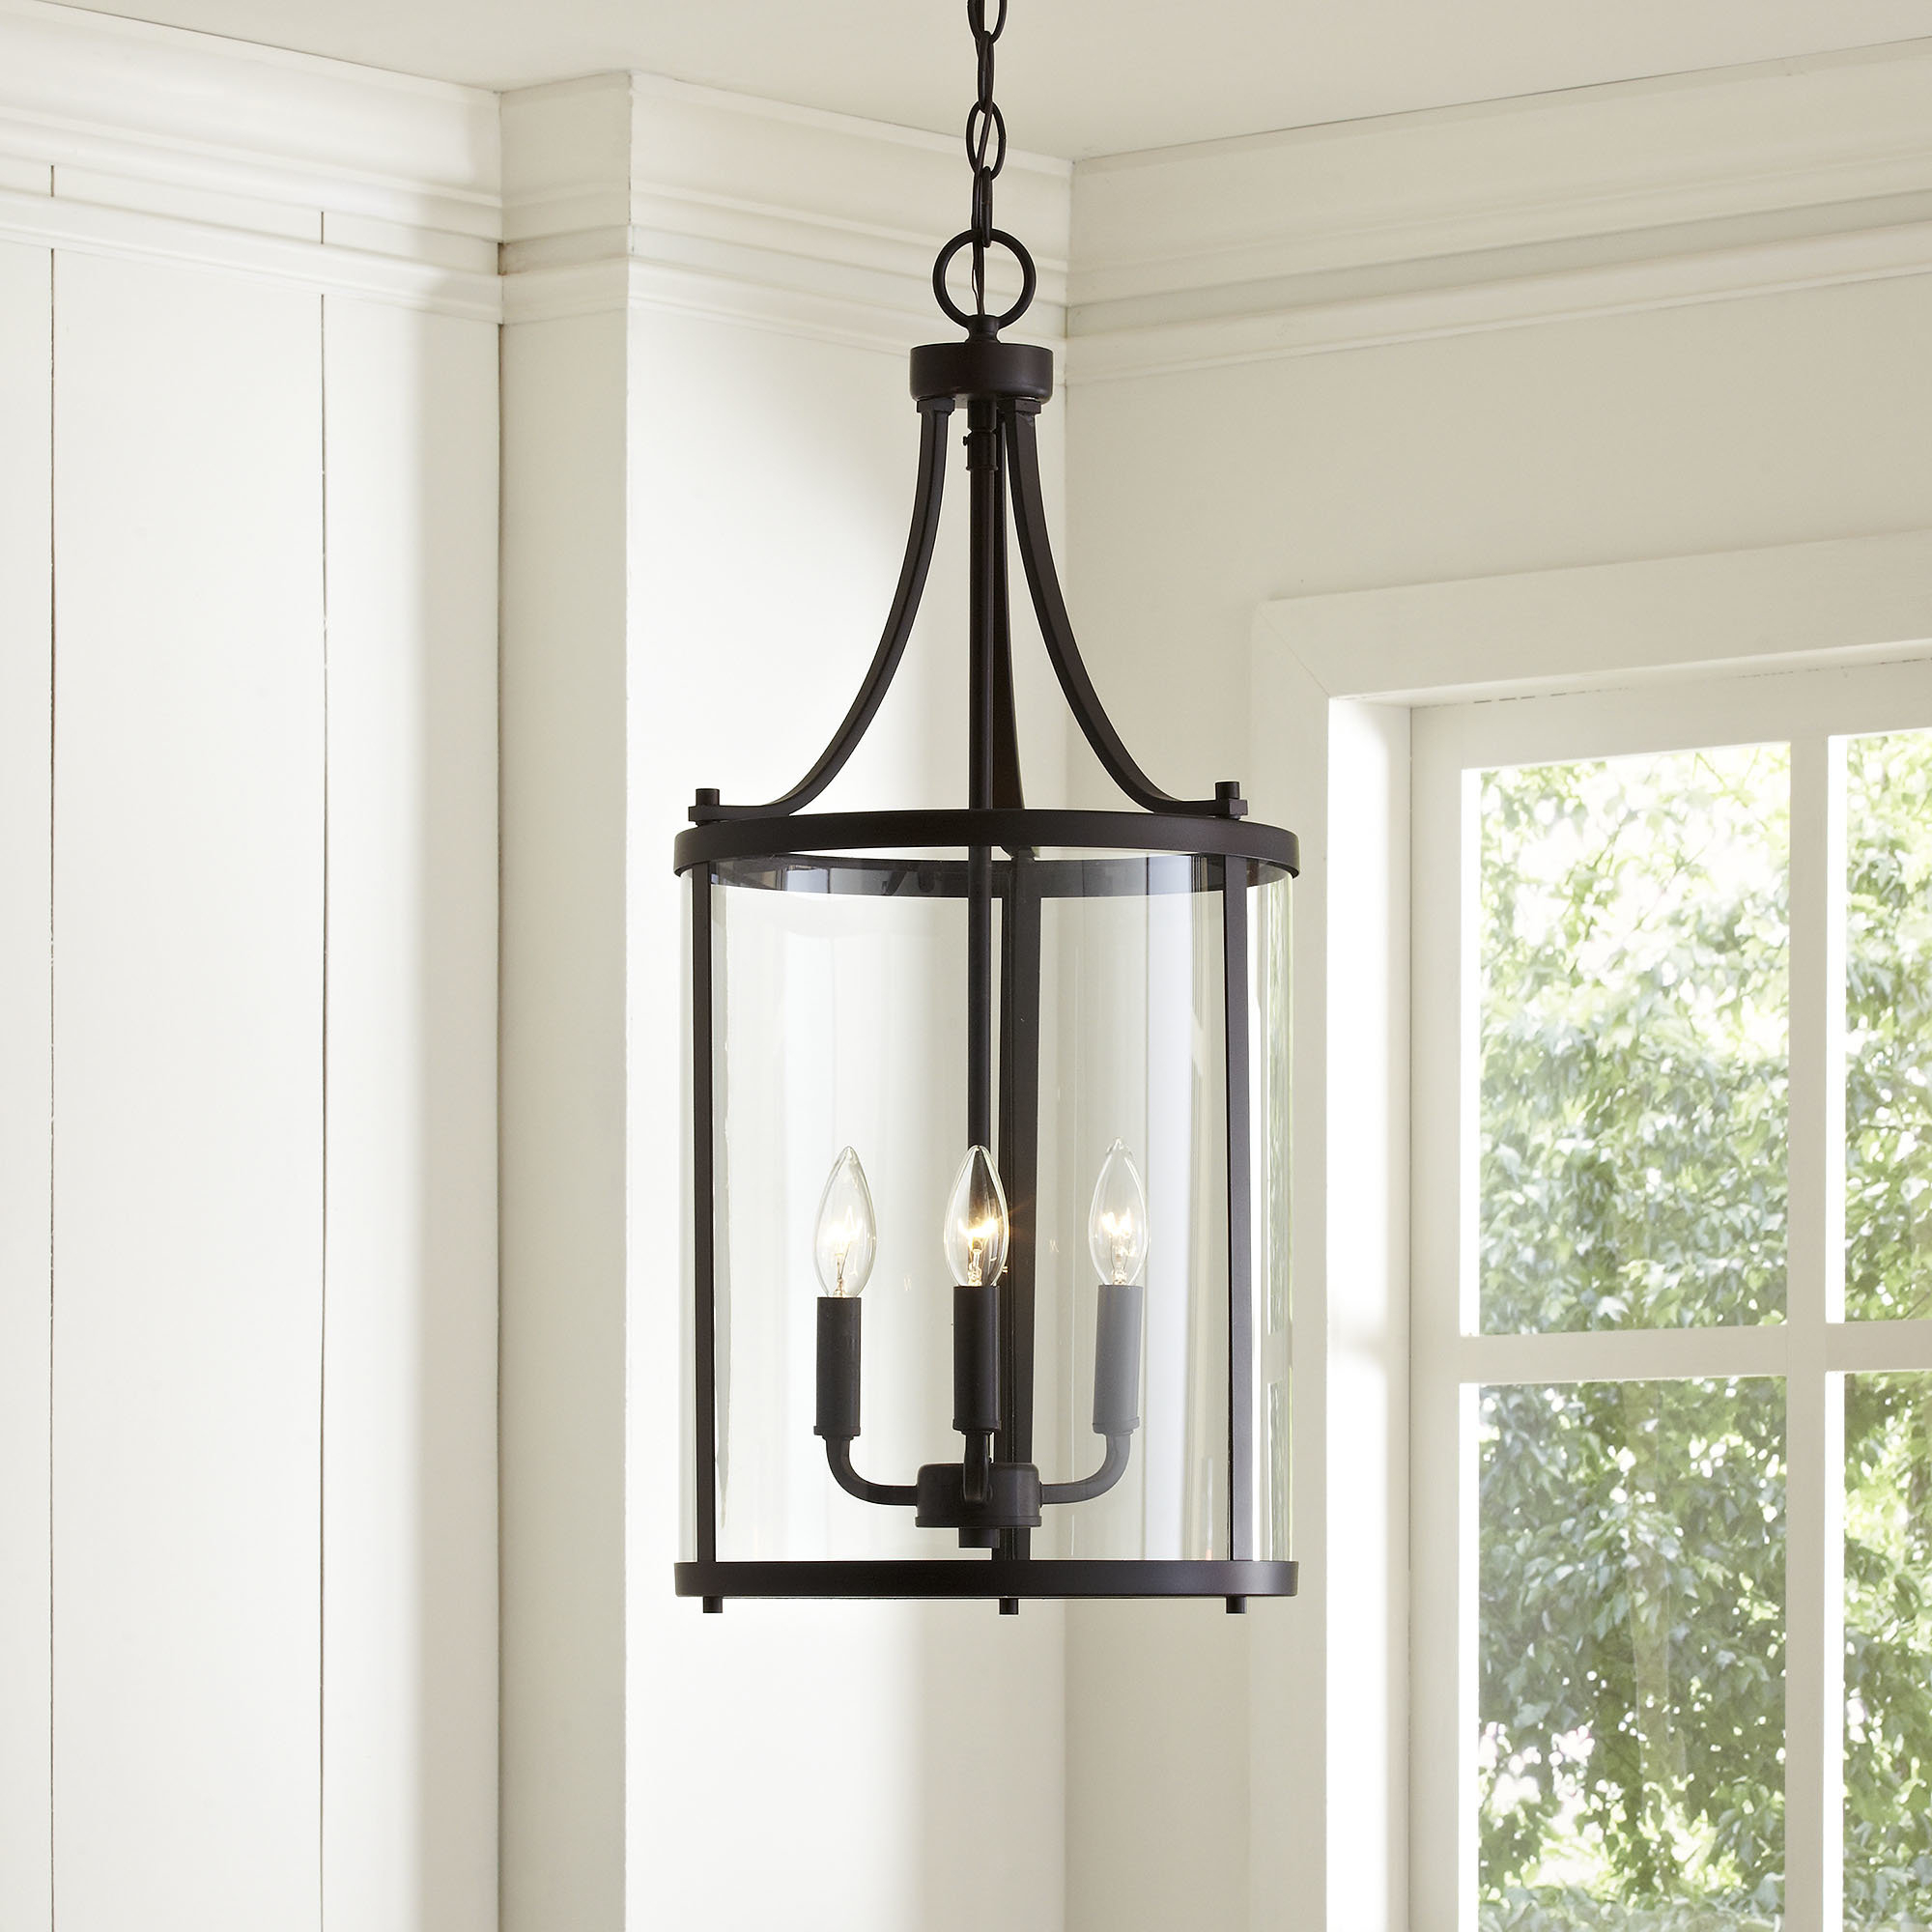 3-Light Lantern Cylinder Pendant with Recent Armande 3-Light Lantern Geometric Pendants